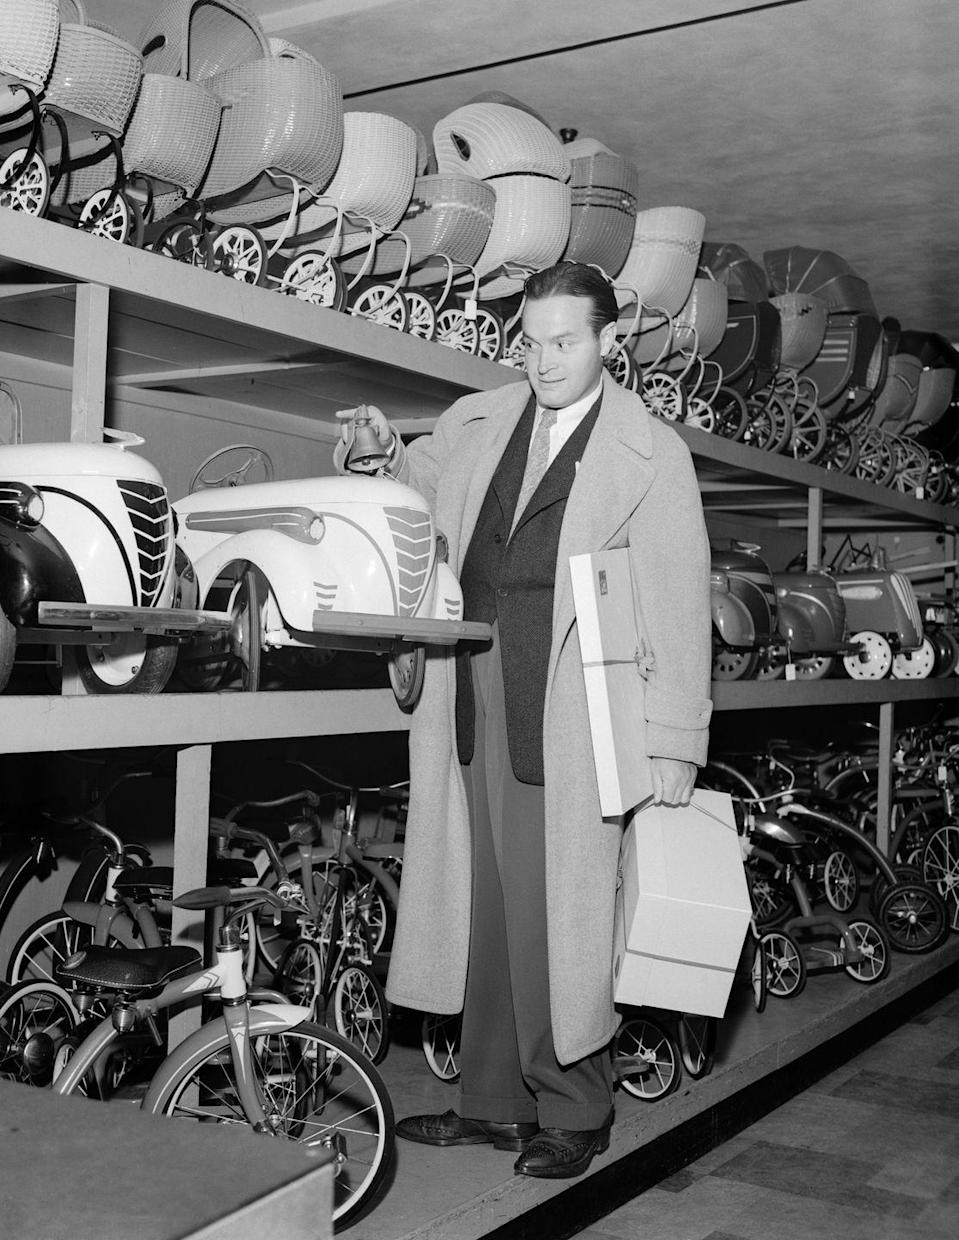 <p>Bob Hope visited a Los Angeles department store to pick out presents for his children, Donna and Tony. The comedian looks like he's still dressed for work with a suit and tie under his overcoat.</p>